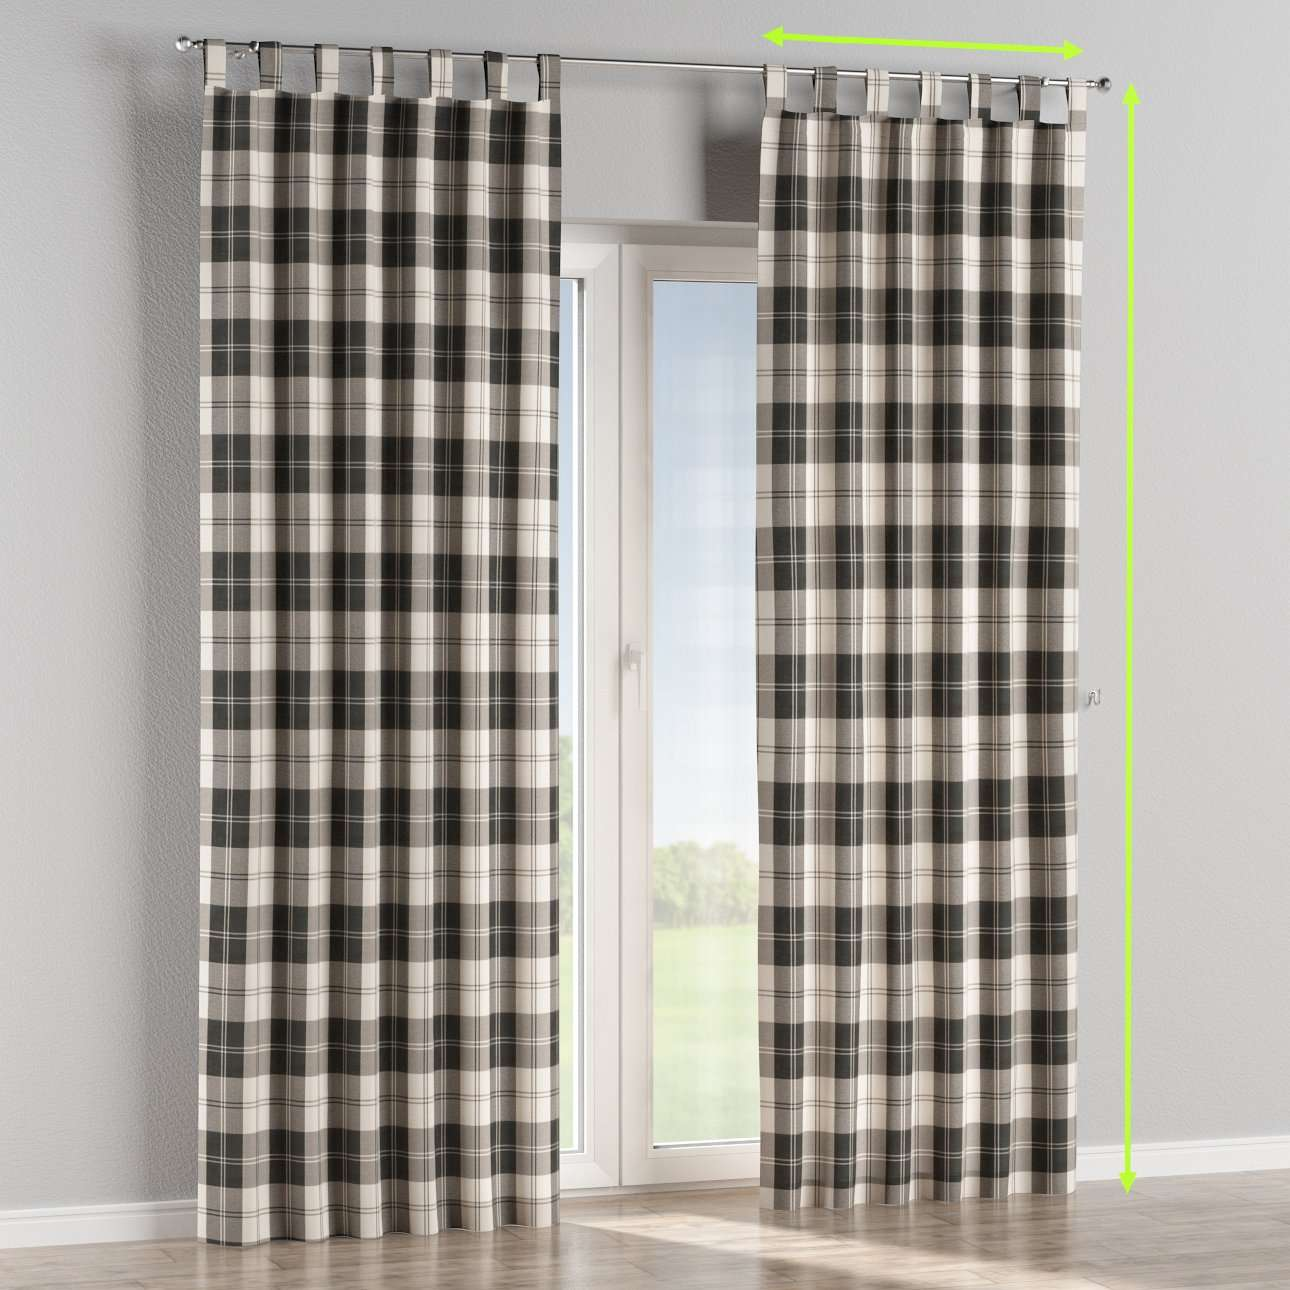 Tab top curtains in collection Edinburgh , fabric: 115-74